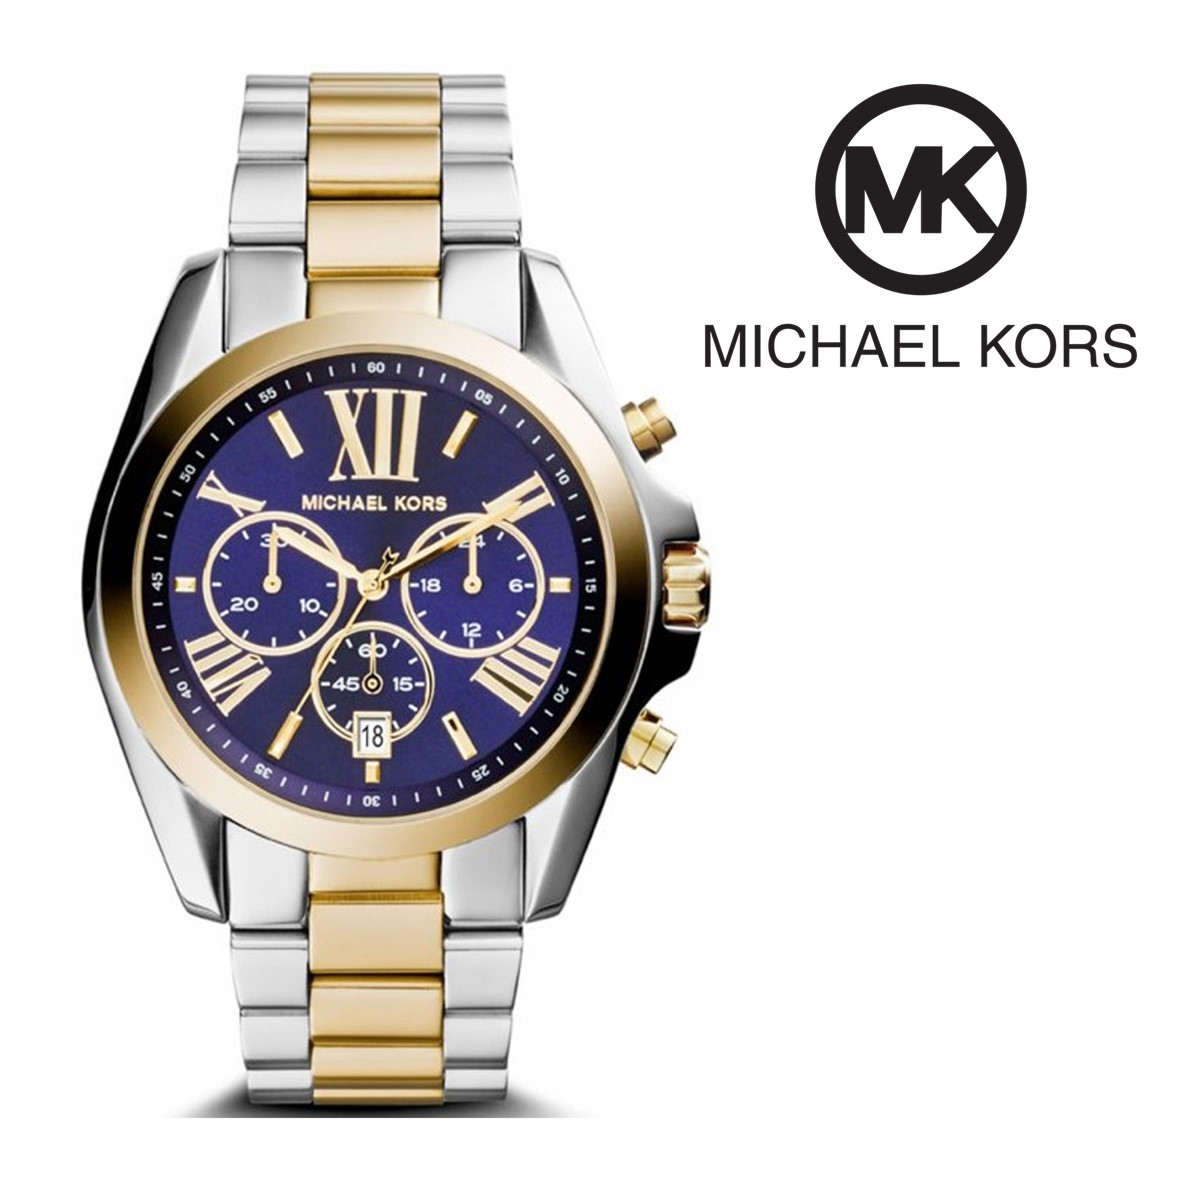 Relógio Michael Kors® Bradshaw Chronograph Blue   10ATM - You Like It 746c73ee10